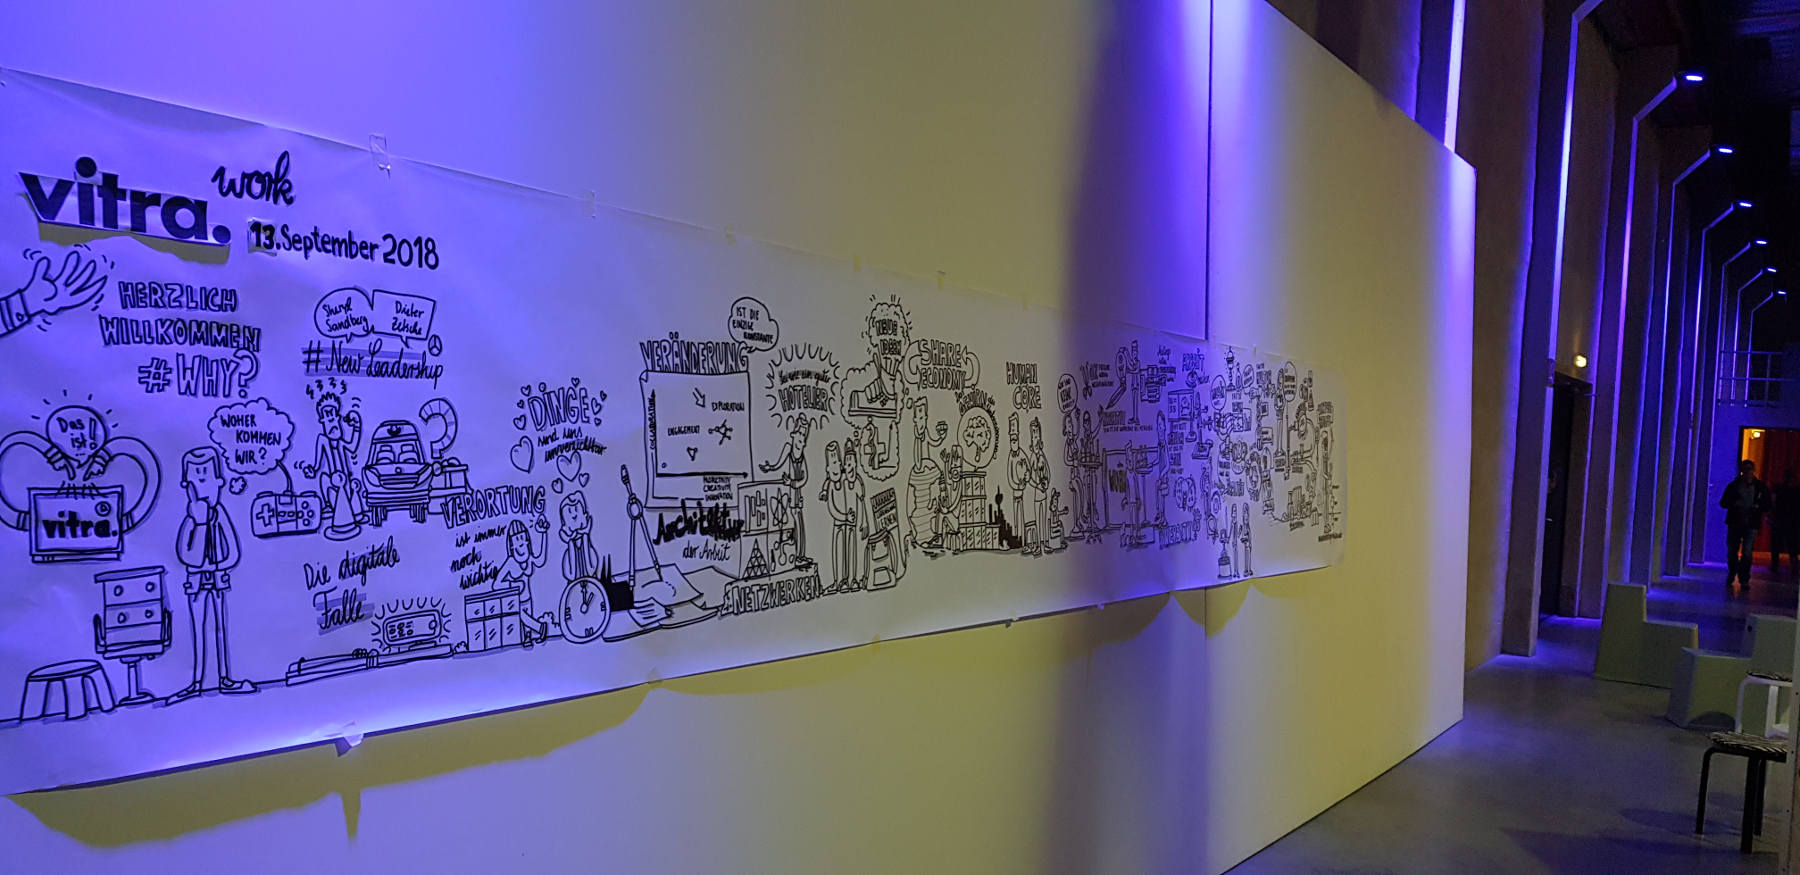 "Vitra Graphic Recording ""work"" Foto"